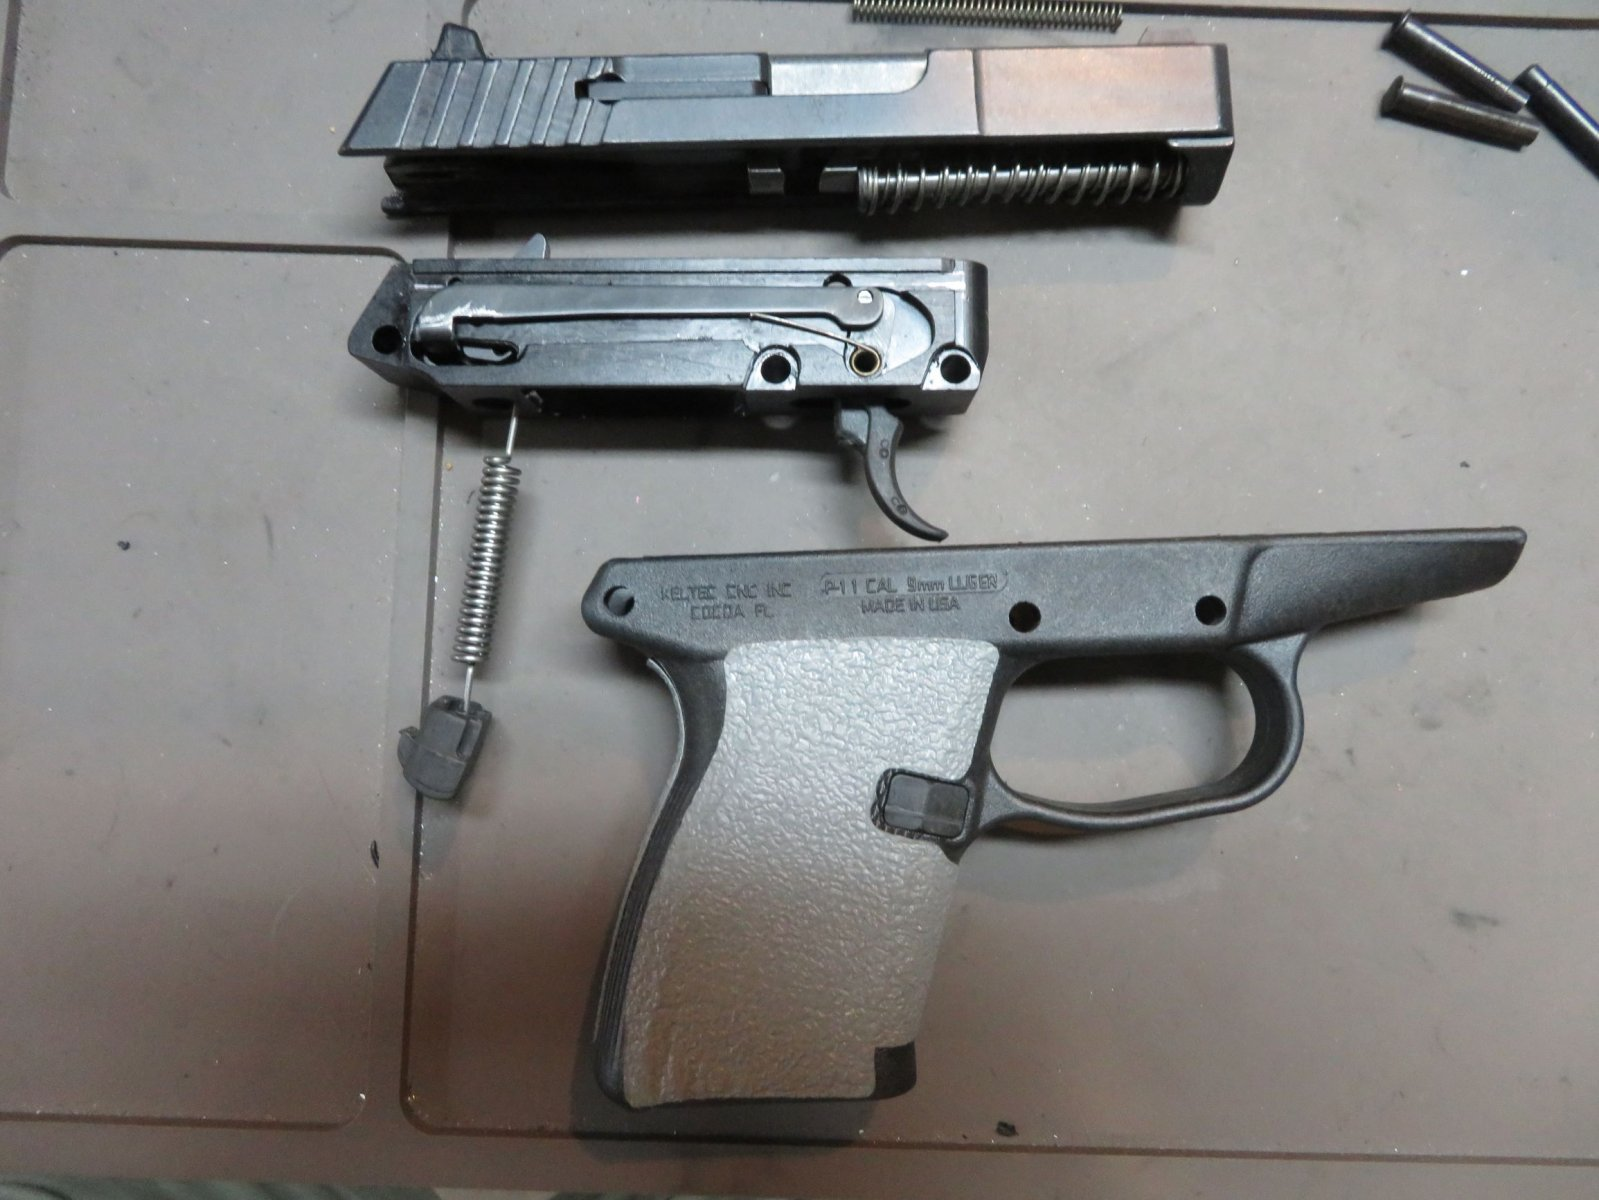 SIG P365 vs Kel-Tec P11 | The Leading Glock Forum and